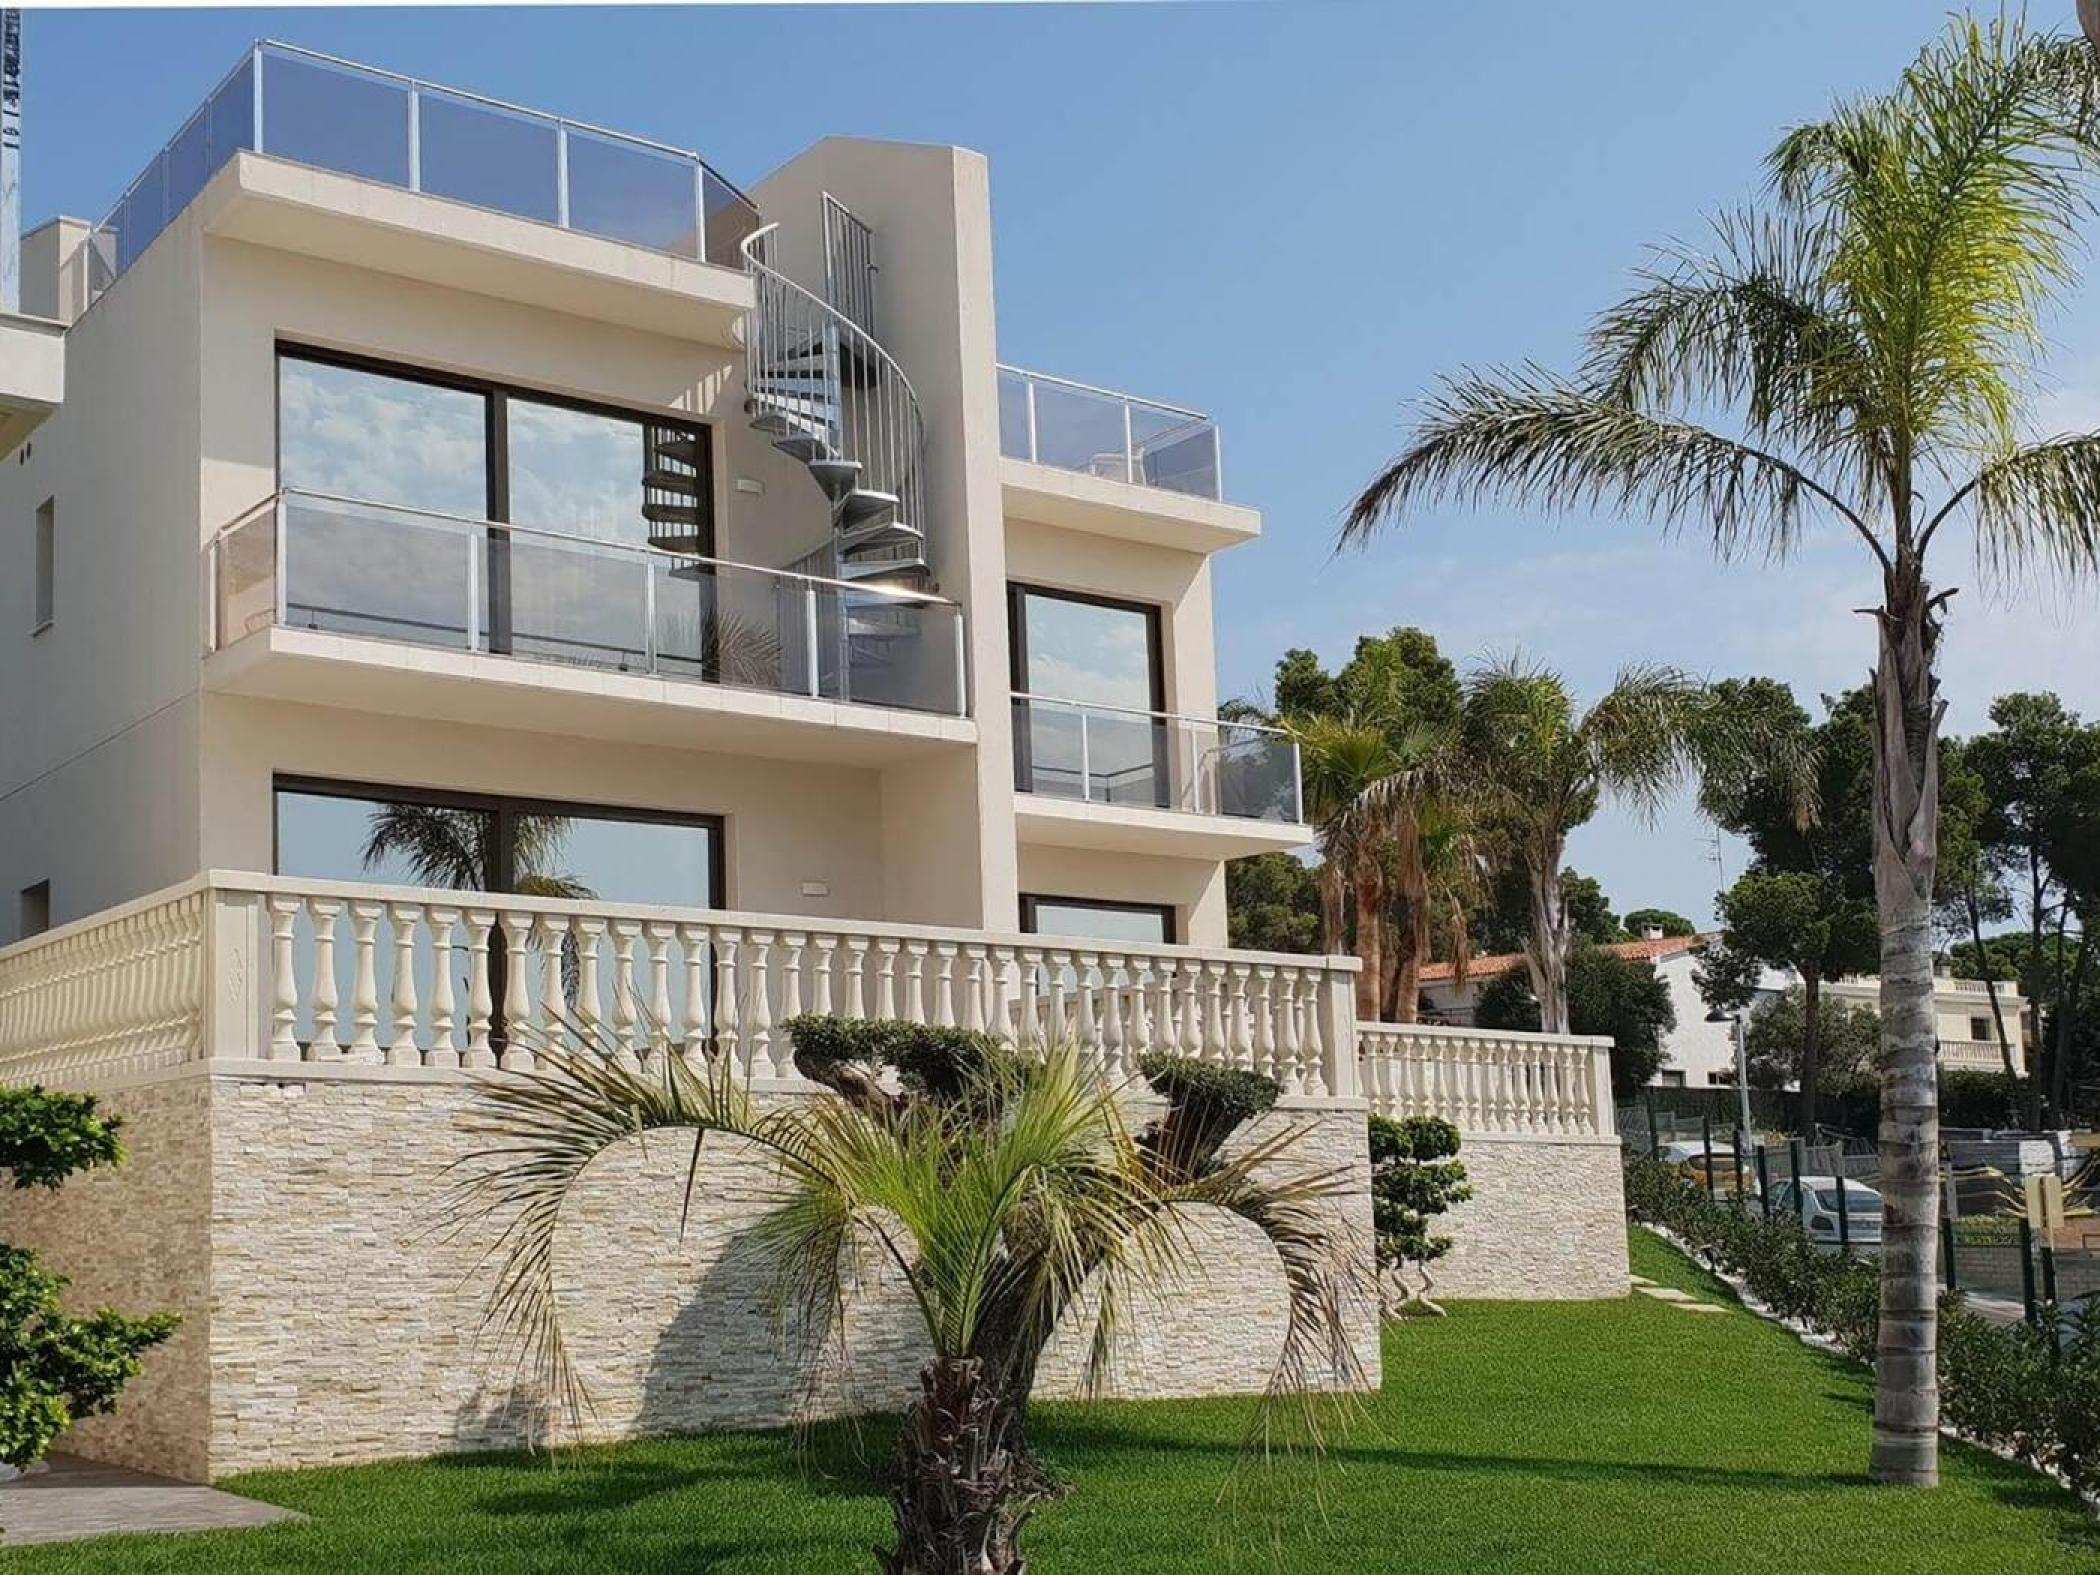 Rent Villa with Swimming pool in Platja d'Aro - Calma Holiday Villas jacuzzi 12 - 35